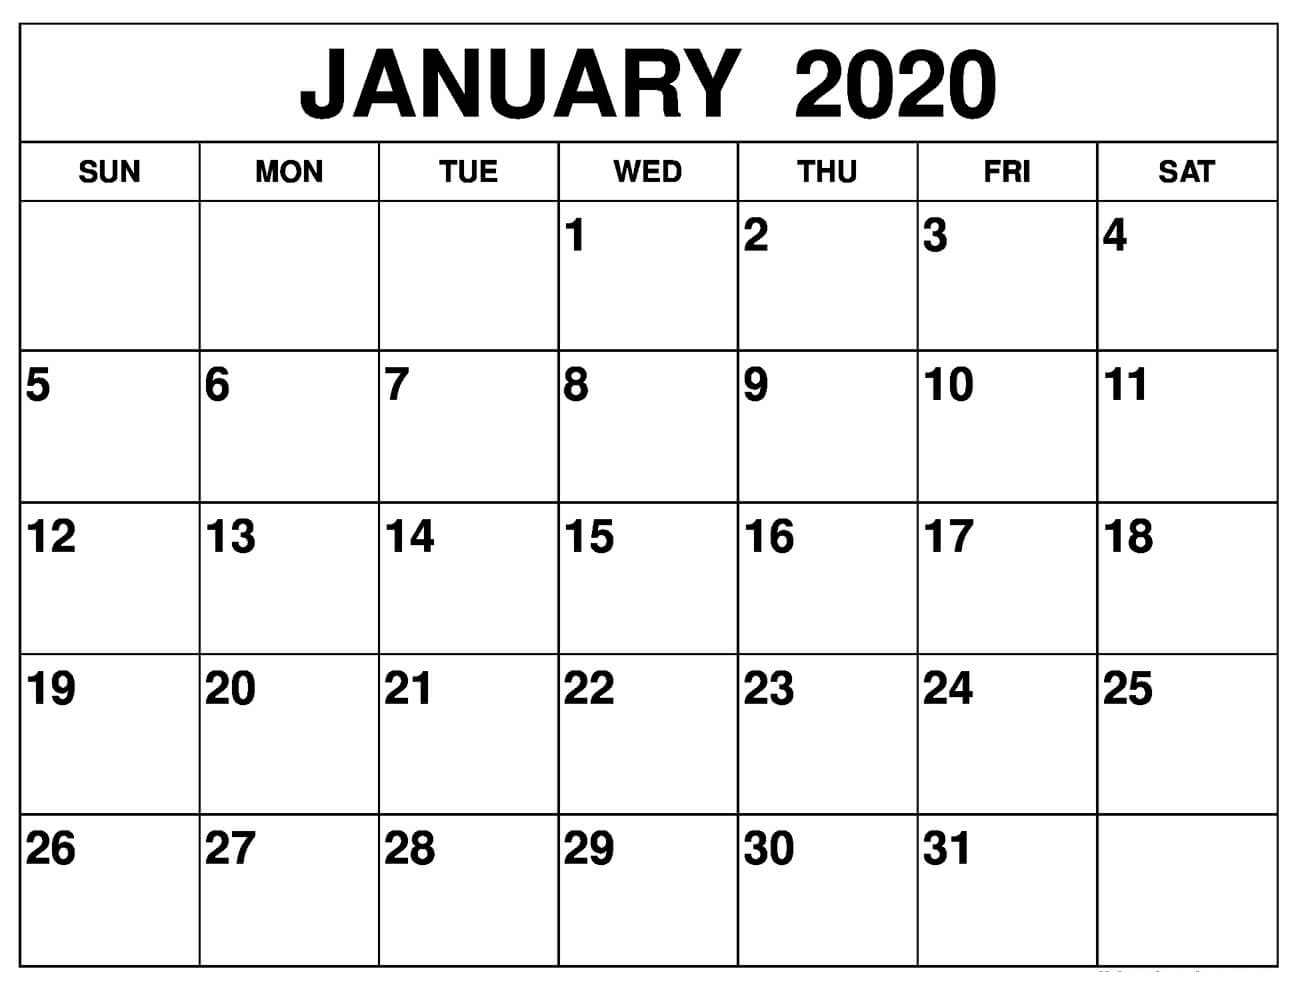 Printable January 2020 Calendar – Daily Planner | 12 Month intended for January 2020 Calendar Blank